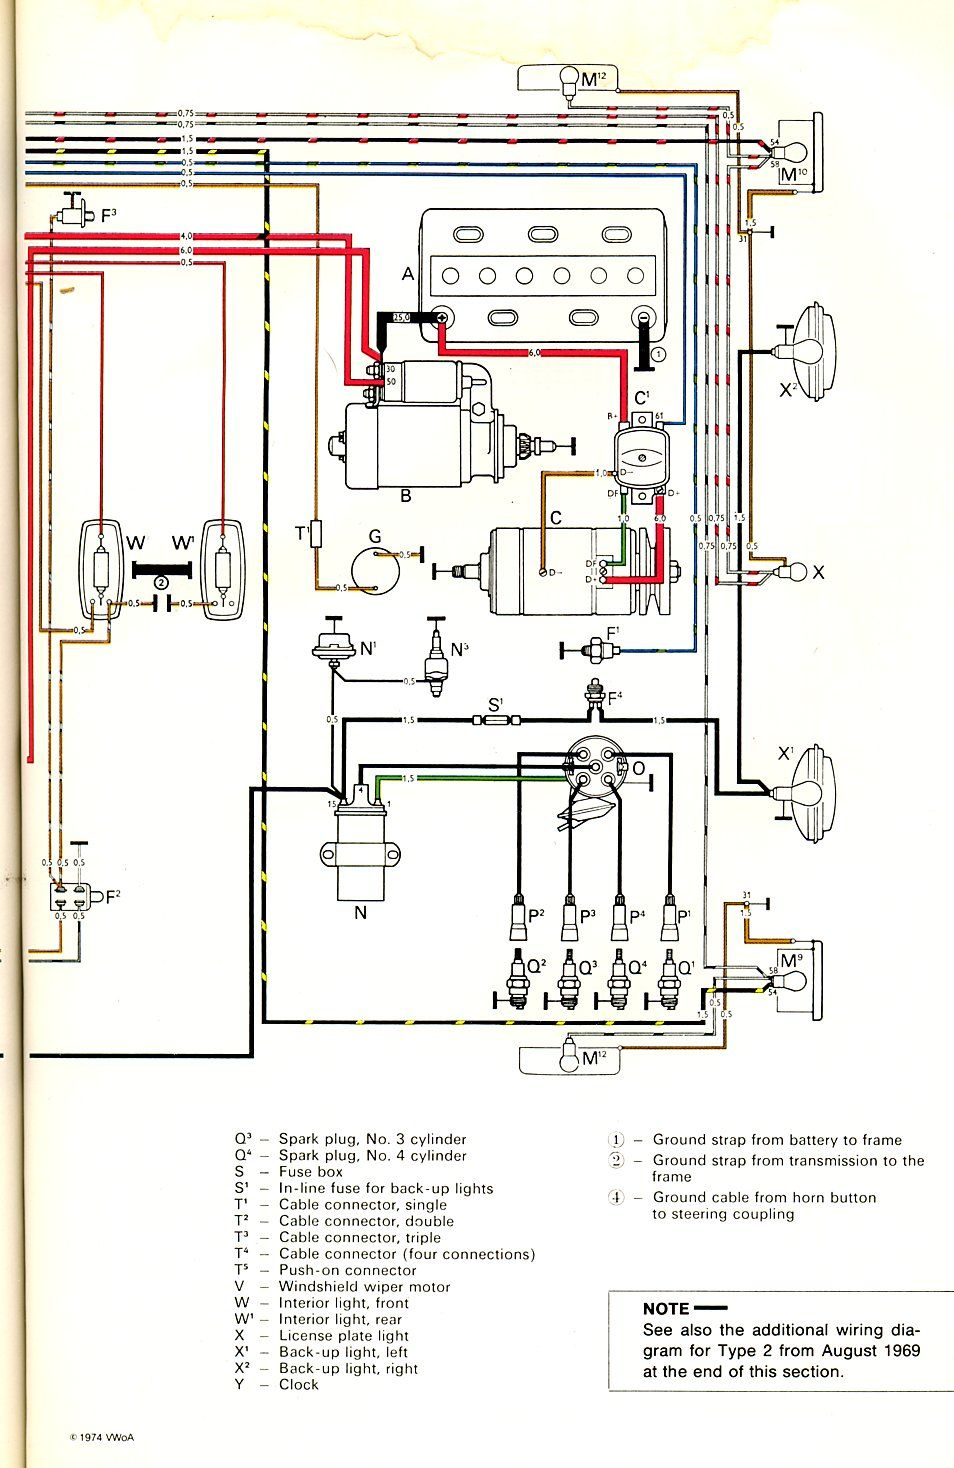 Electrical Wiring Drawing Vw Links In 2018 Pinterest A House How To